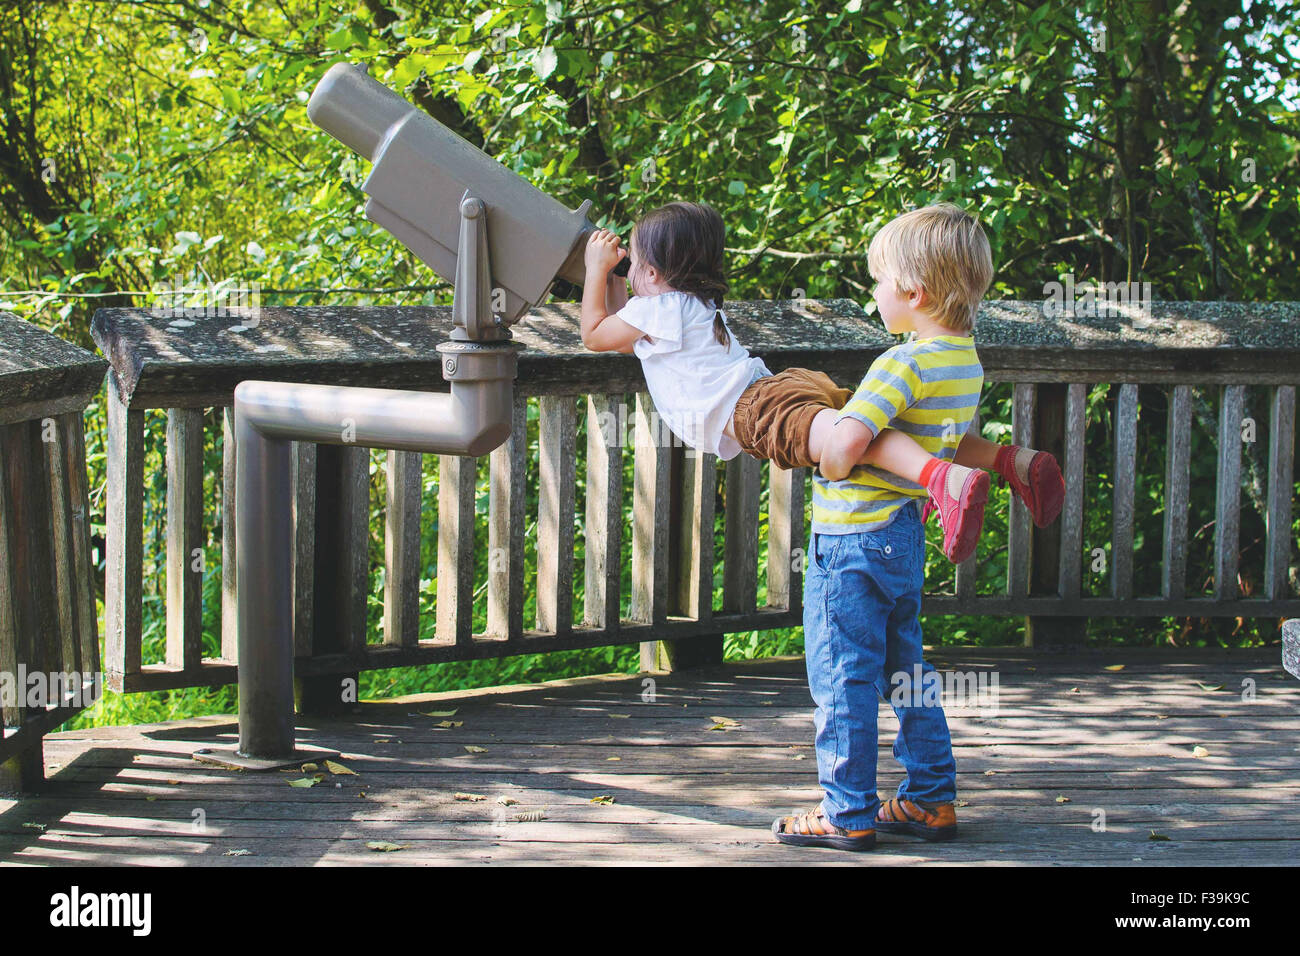 Boy lifting girl to look through telescope - Stock Image